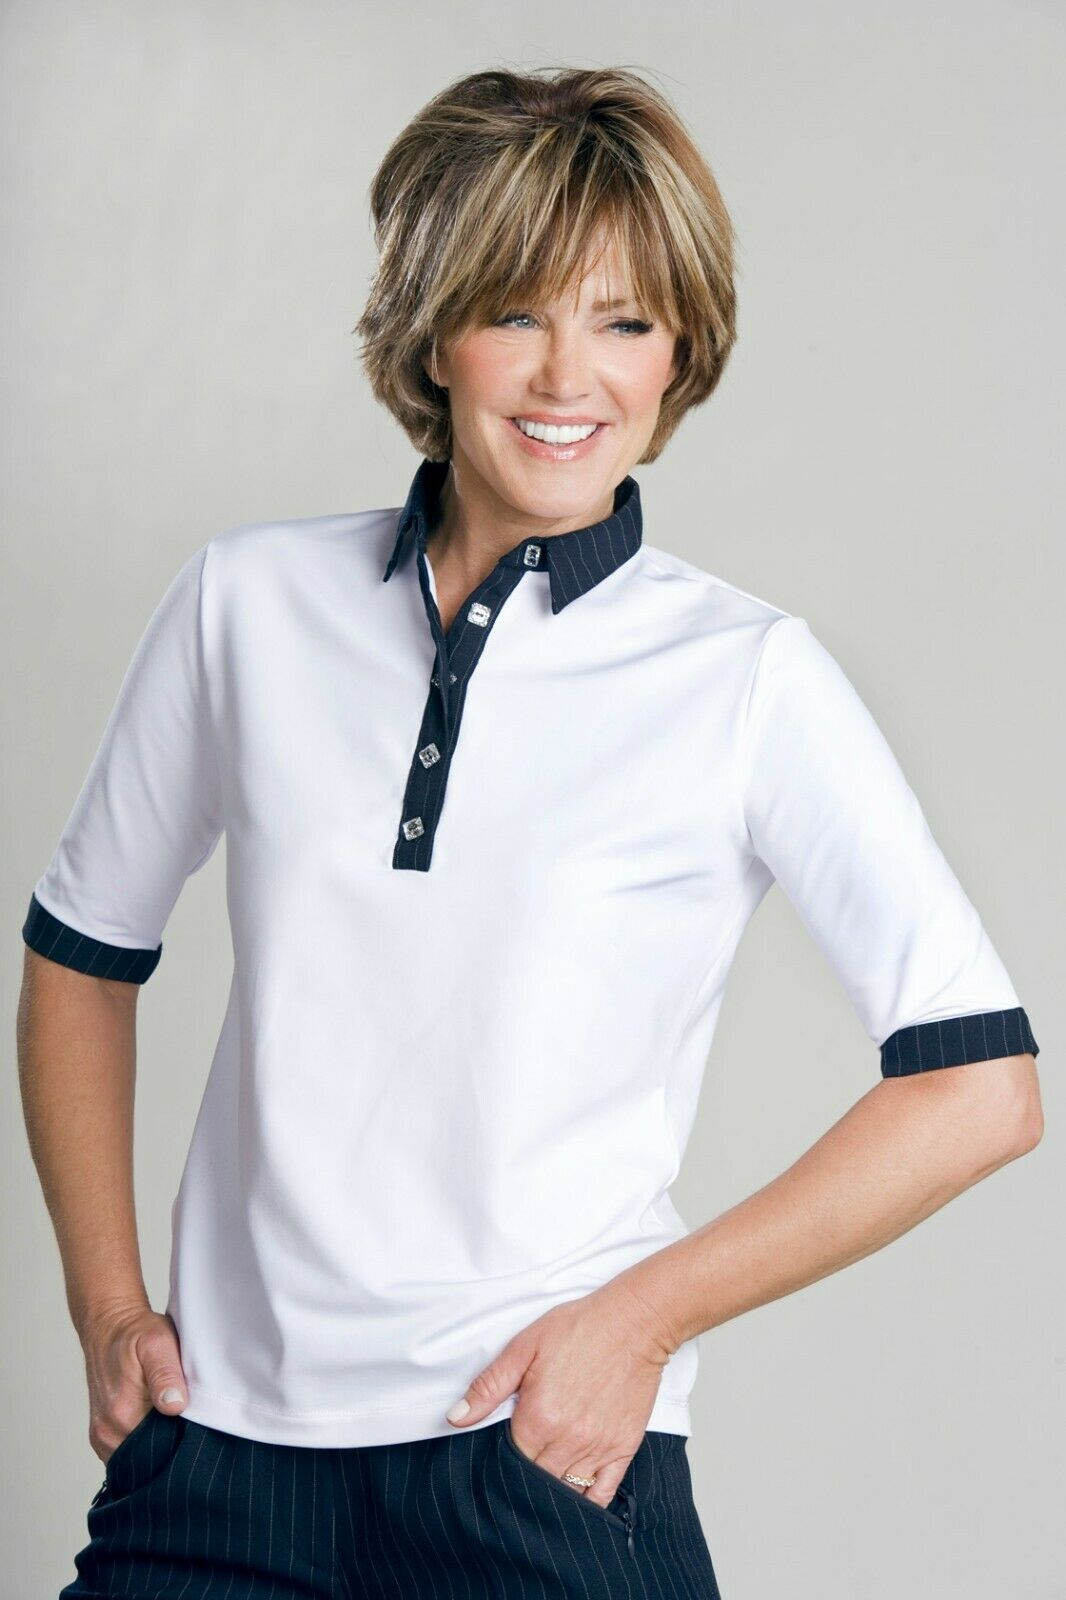 Stylish Women's Golf & Casual White Short Sleeve Collar Top, Swarovski Buttons